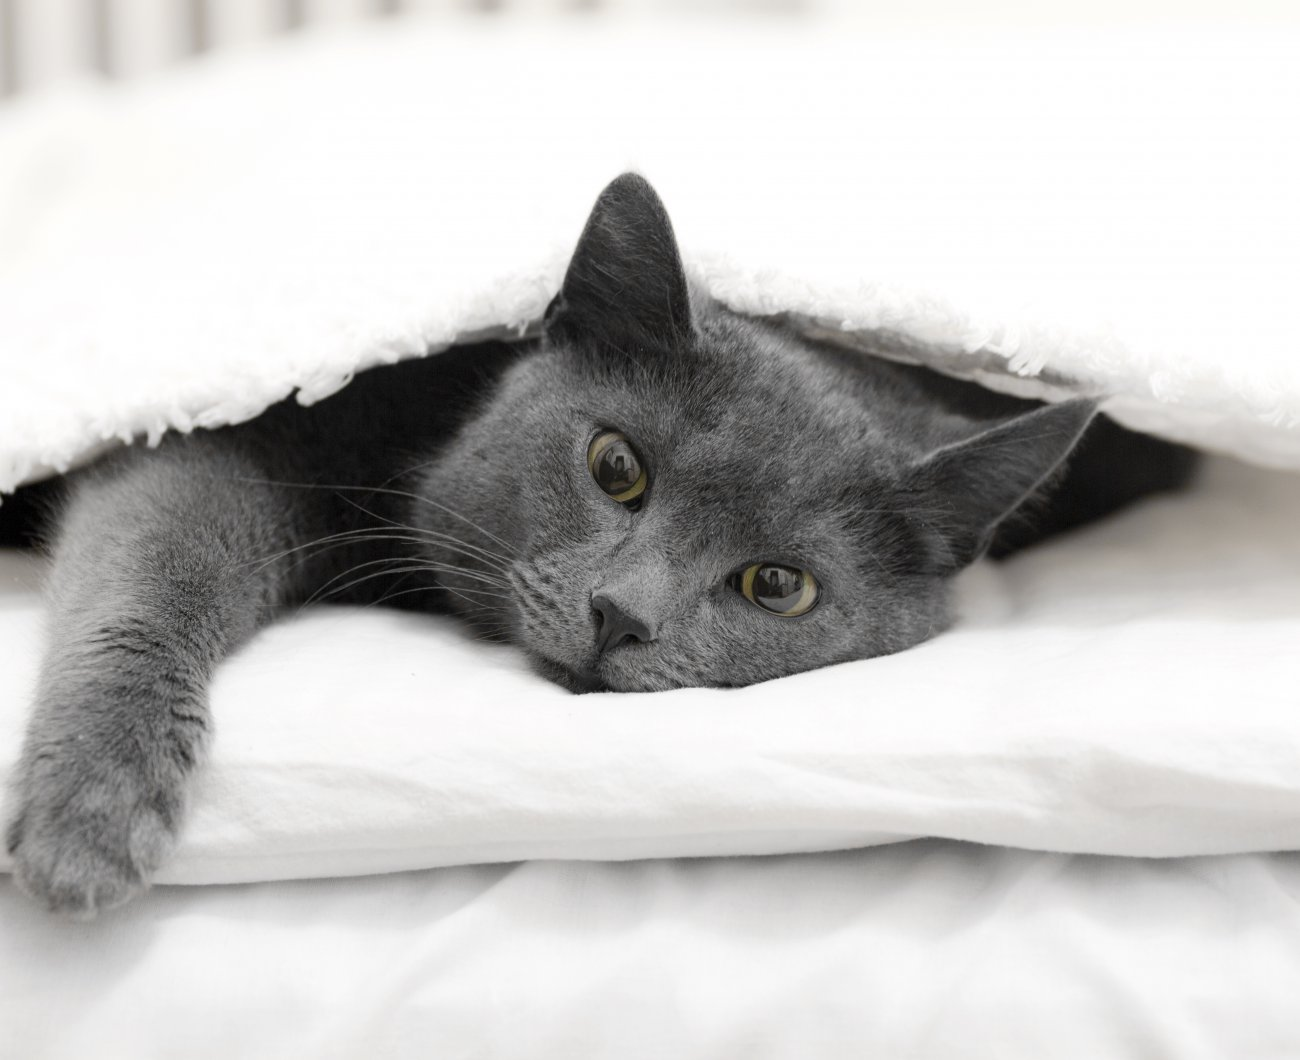 Grey cat lying under blanket on bed